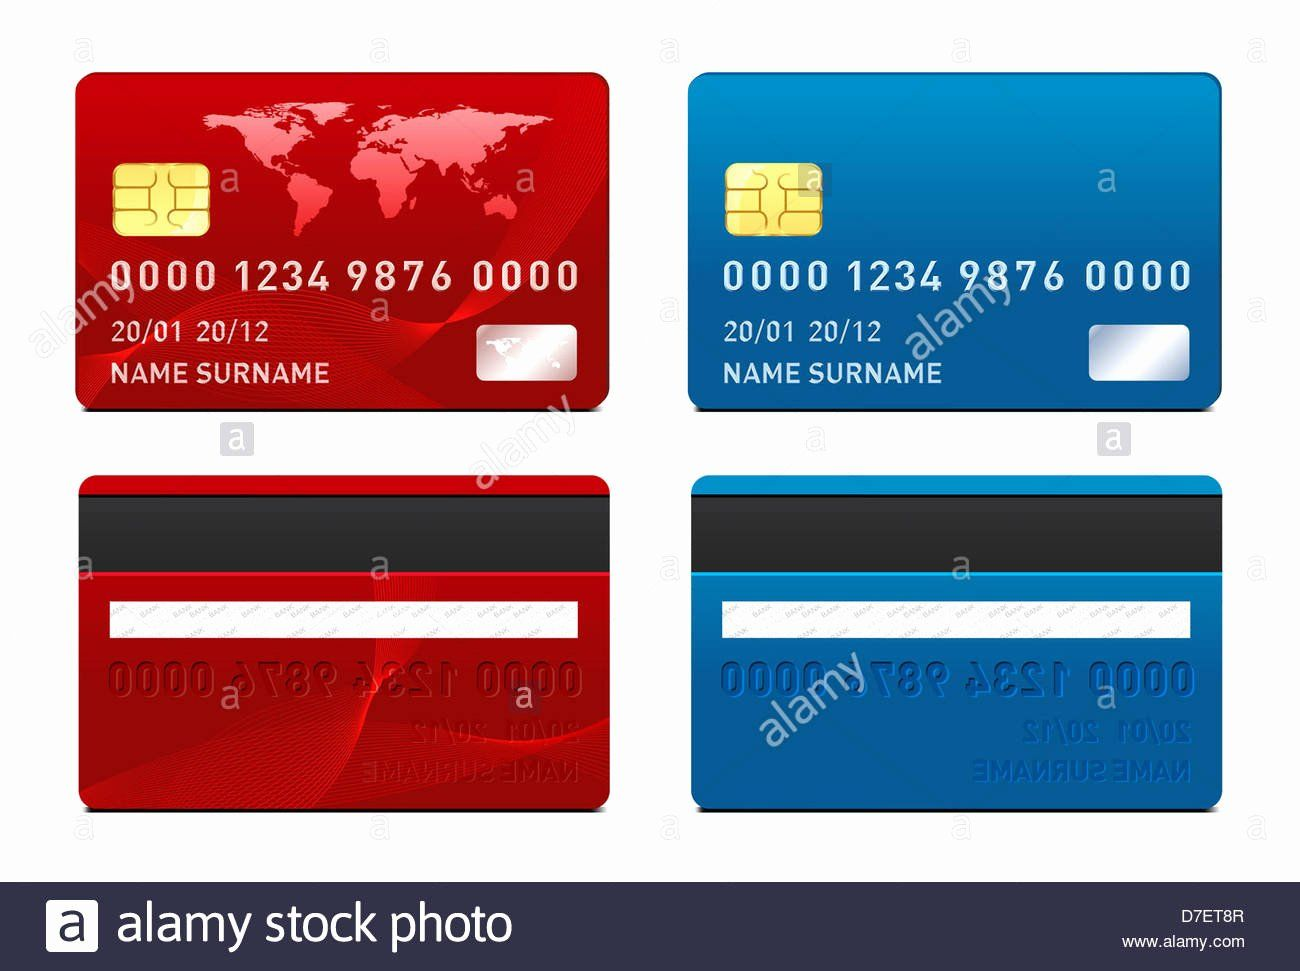 Blank Credit Card Template Luxury Credit Card Template Front And Back Side Stock Visa Card Credit Card Types Of Credit Cards